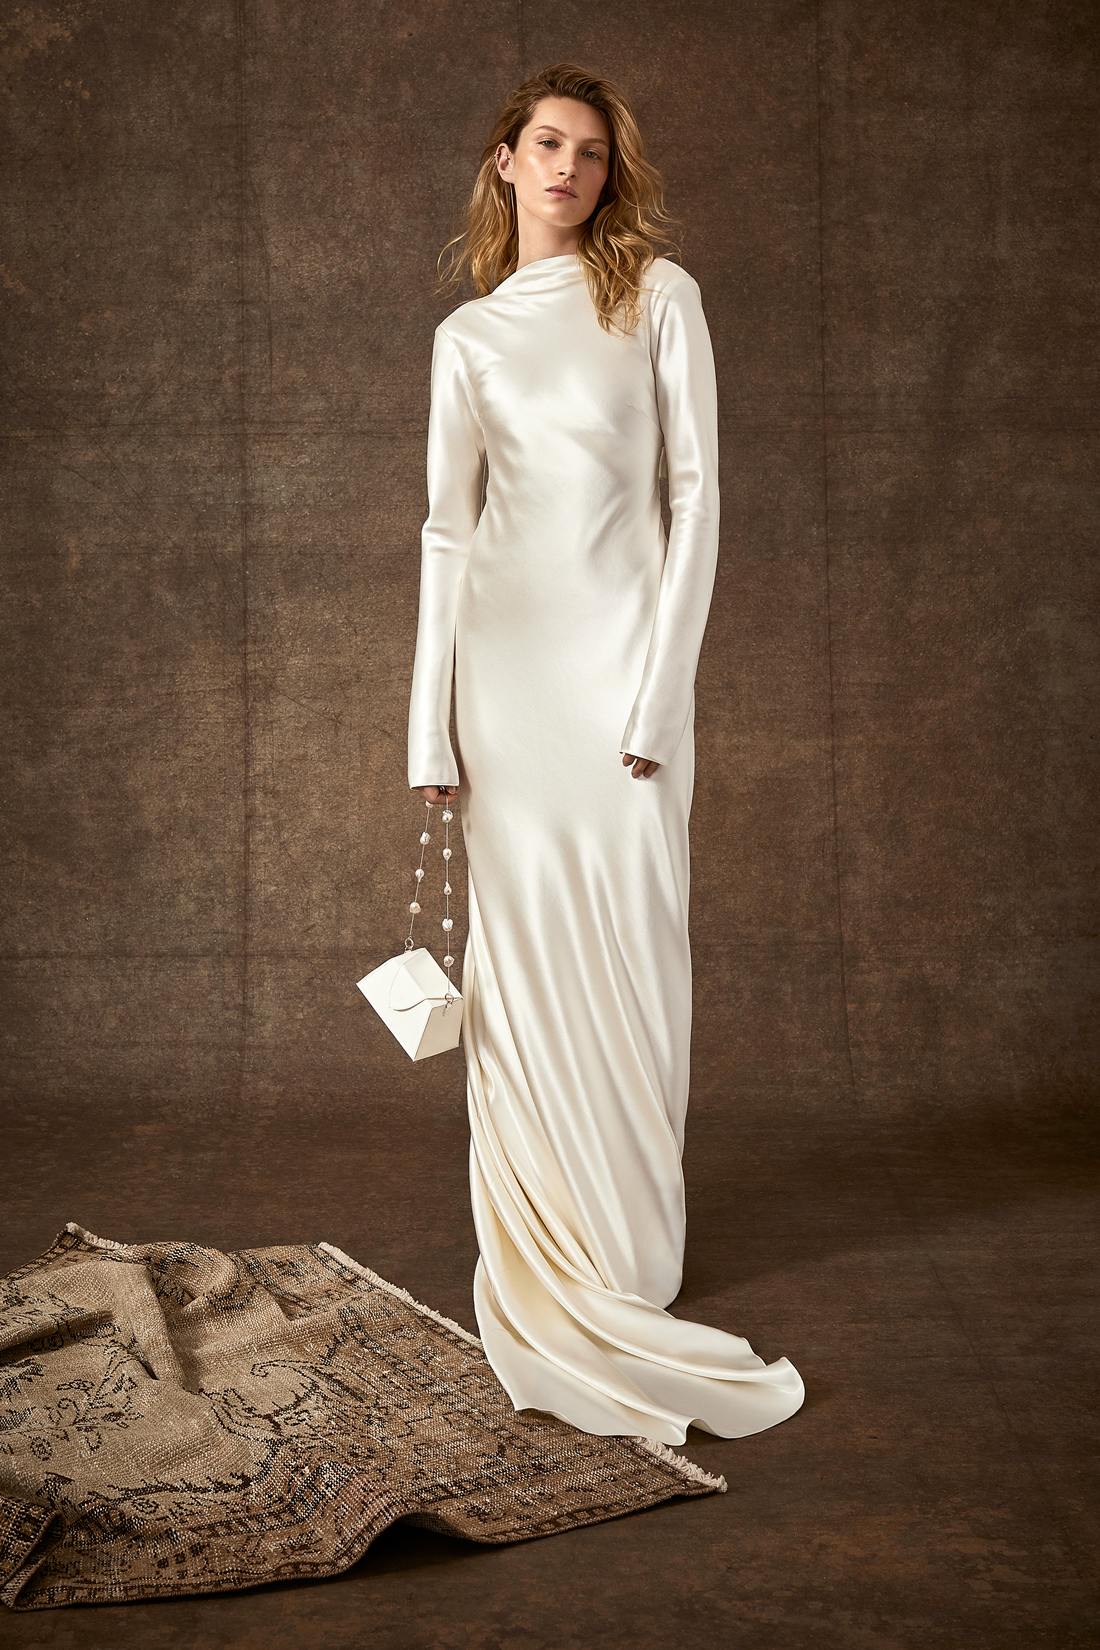 high-neck long sleeve sheath wedding dress Danielle Frankel Spring 2020